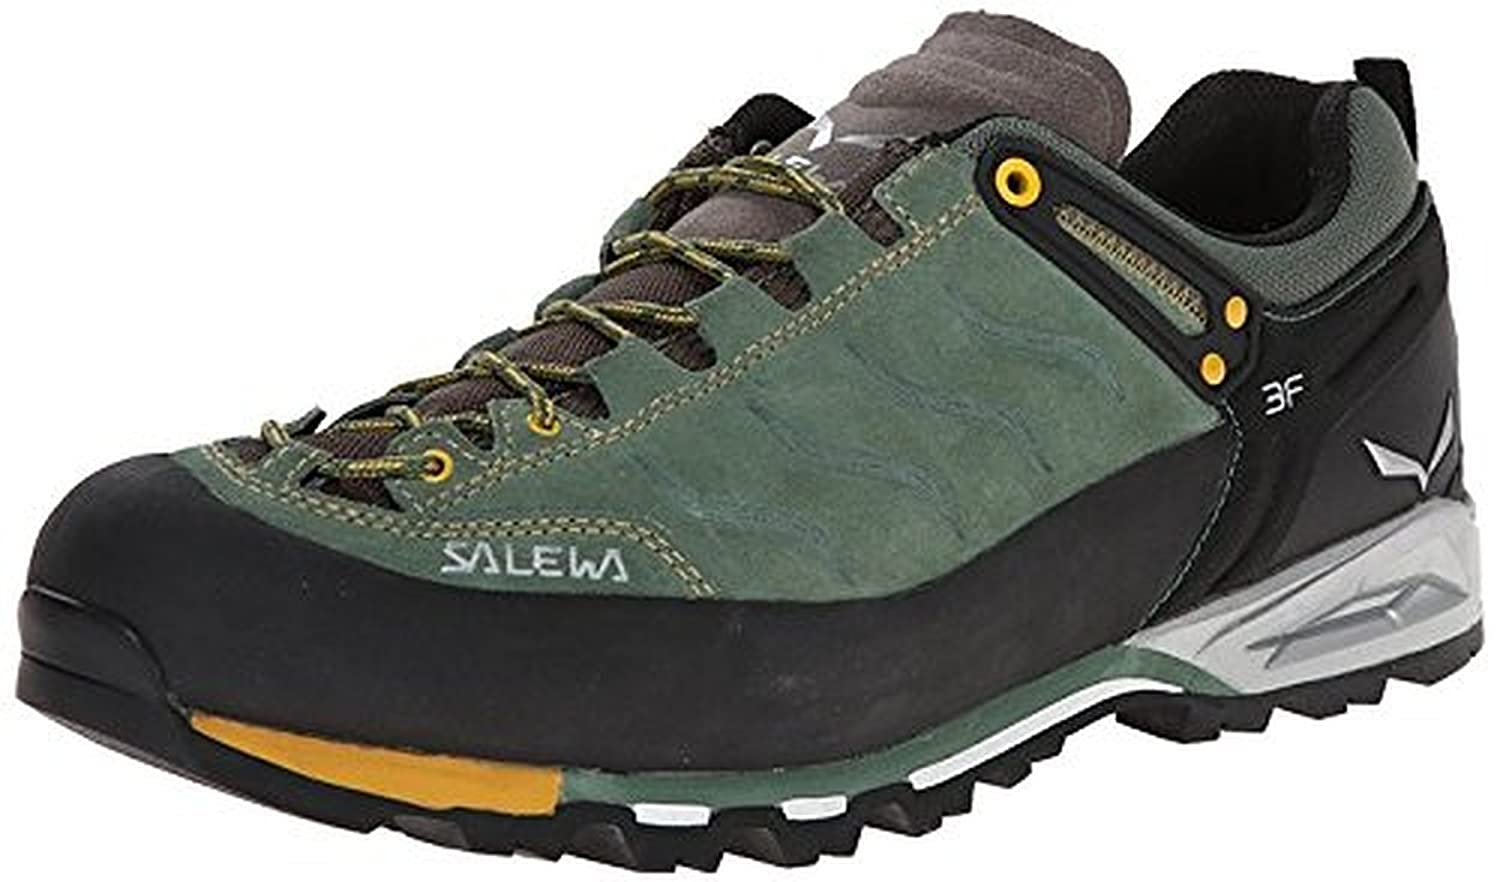 Salewa Men's Mountain Trainer Shoes Myrtle / Nugget Gold 13 & Etip Lite Gripper Glove Bundle